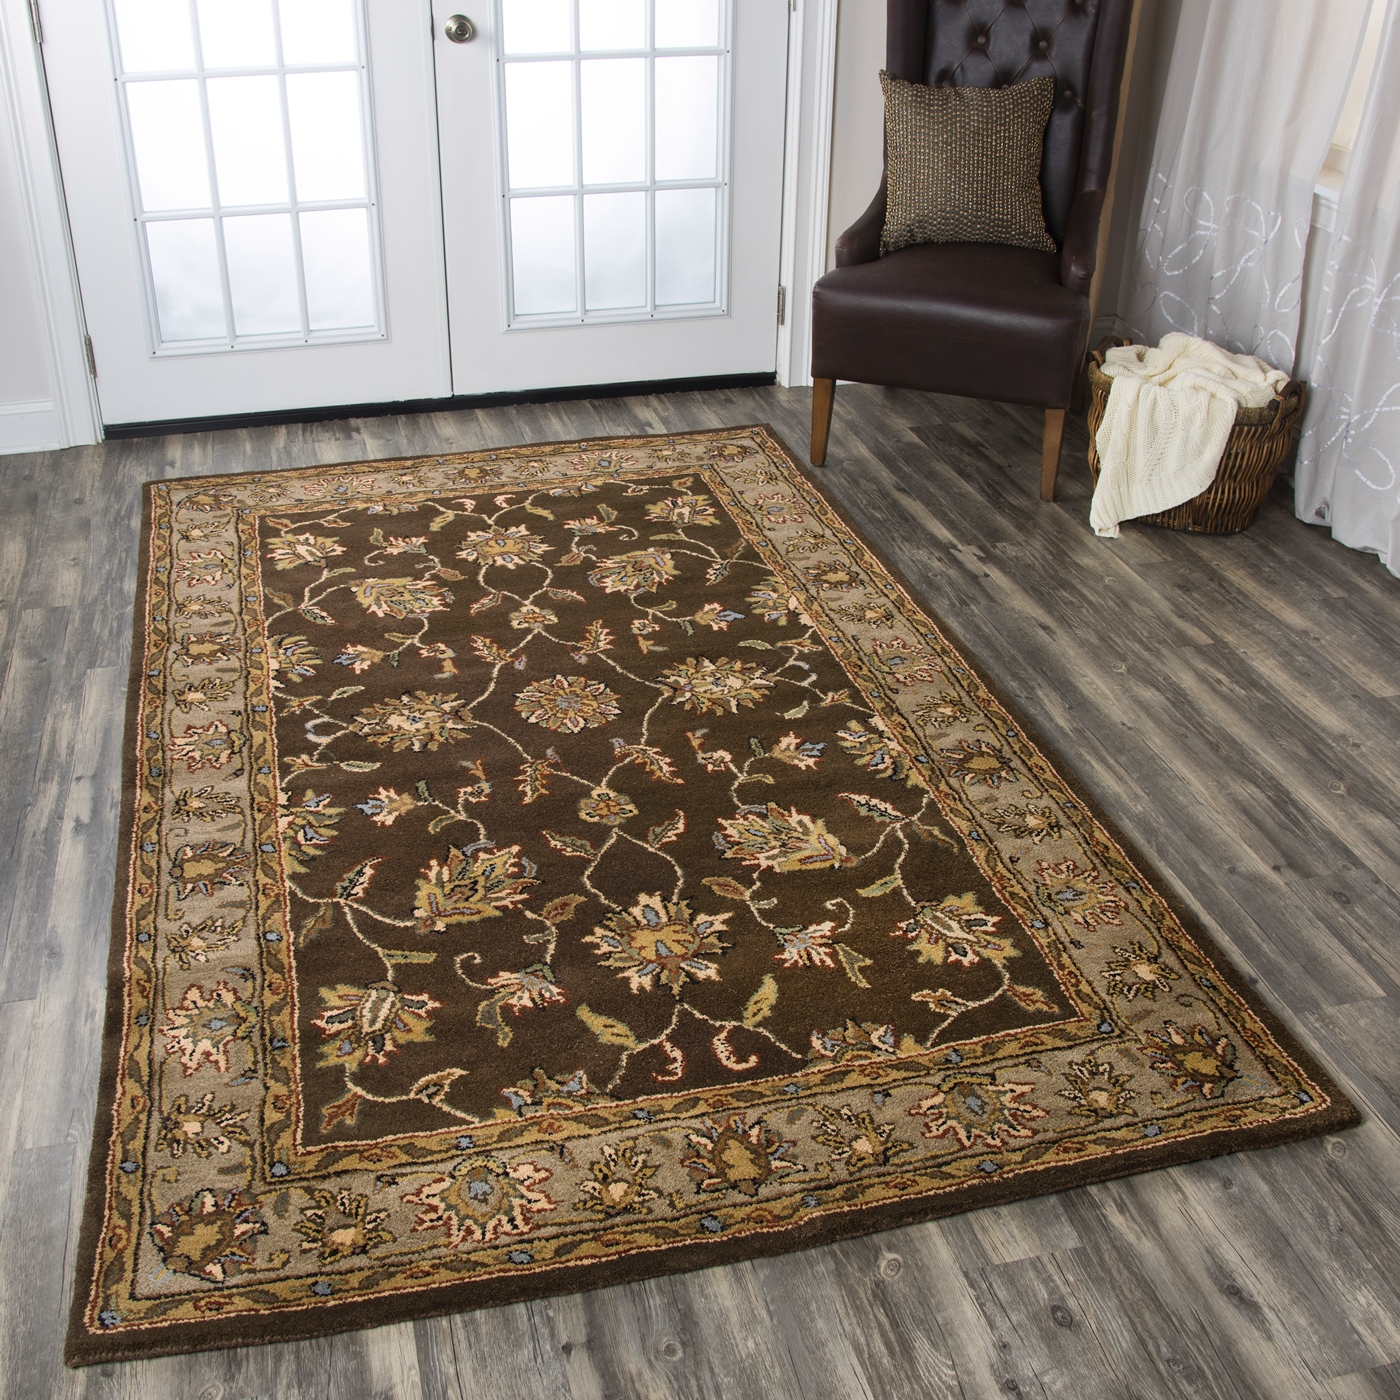 Volare Floral Trellis Pattern Wool Area Rug In Brown Taupe